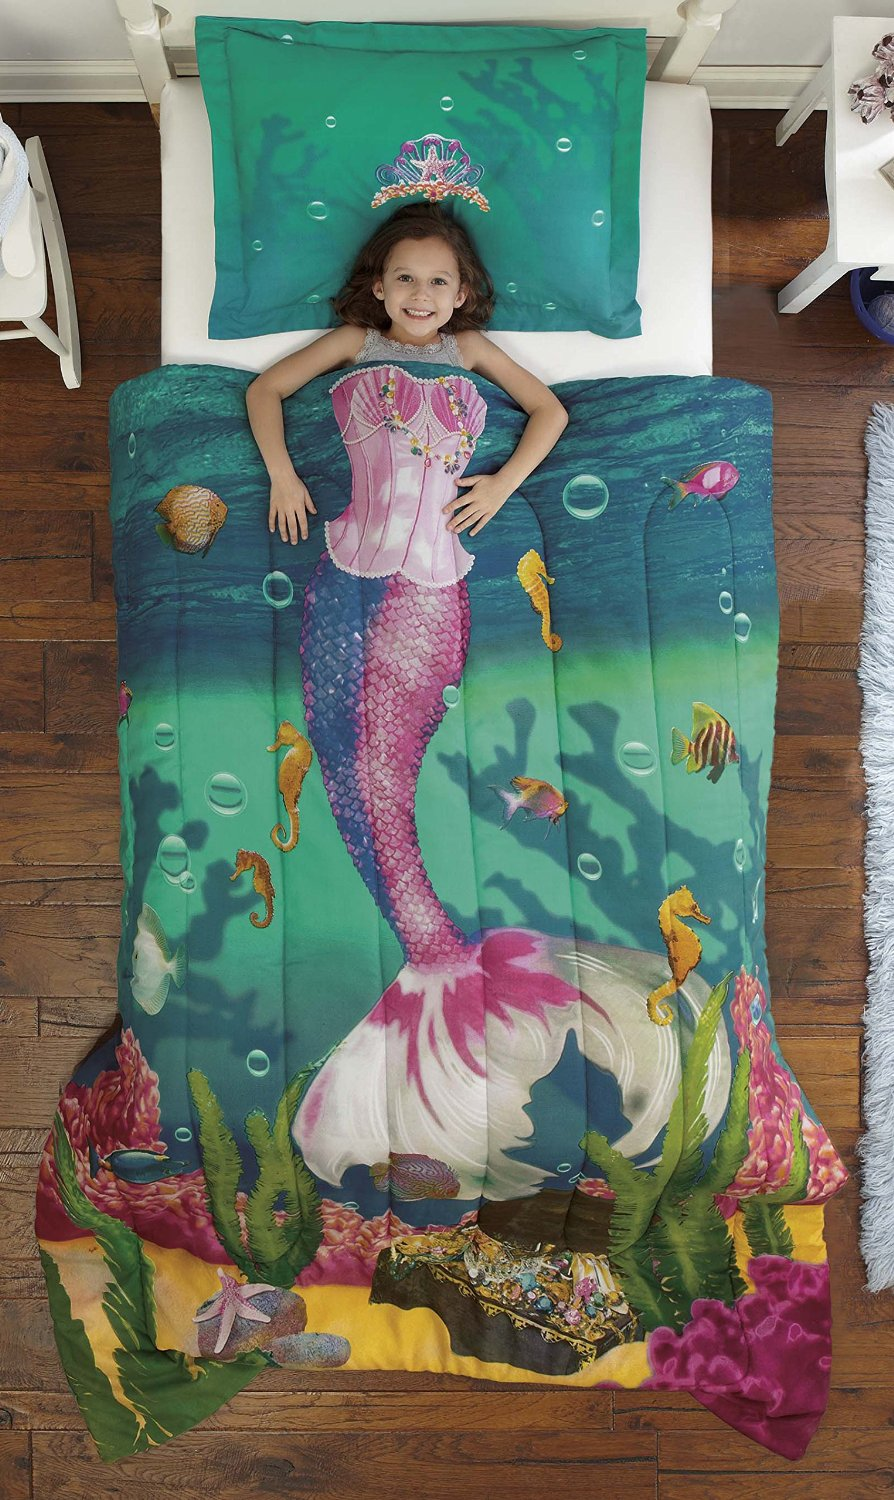 LOVE this! Mermaid bedding for a little girls bedroom - makes her look like a mermaid while she sleeps! #littlegirlsroom #bedroom #bedroomideas #bedroomdecor #diyhomedecor #homedecorideas #diyroomdecor #littlegirl #toddlergirlbedroomideas #toddler #diybedroomideas #pinkbedroomideas